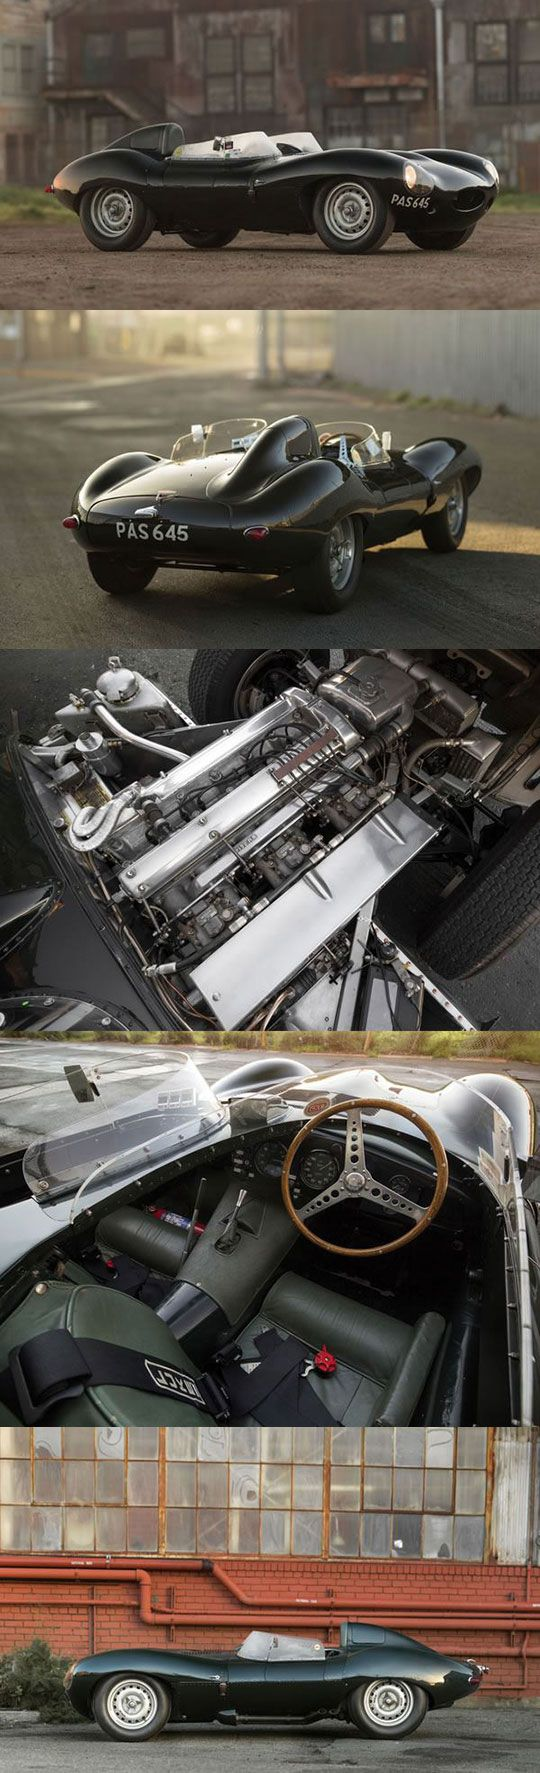 1955 Jaguar D-Type. .......Fab shots of the classic racing Jaguar D type! #JaguarDType